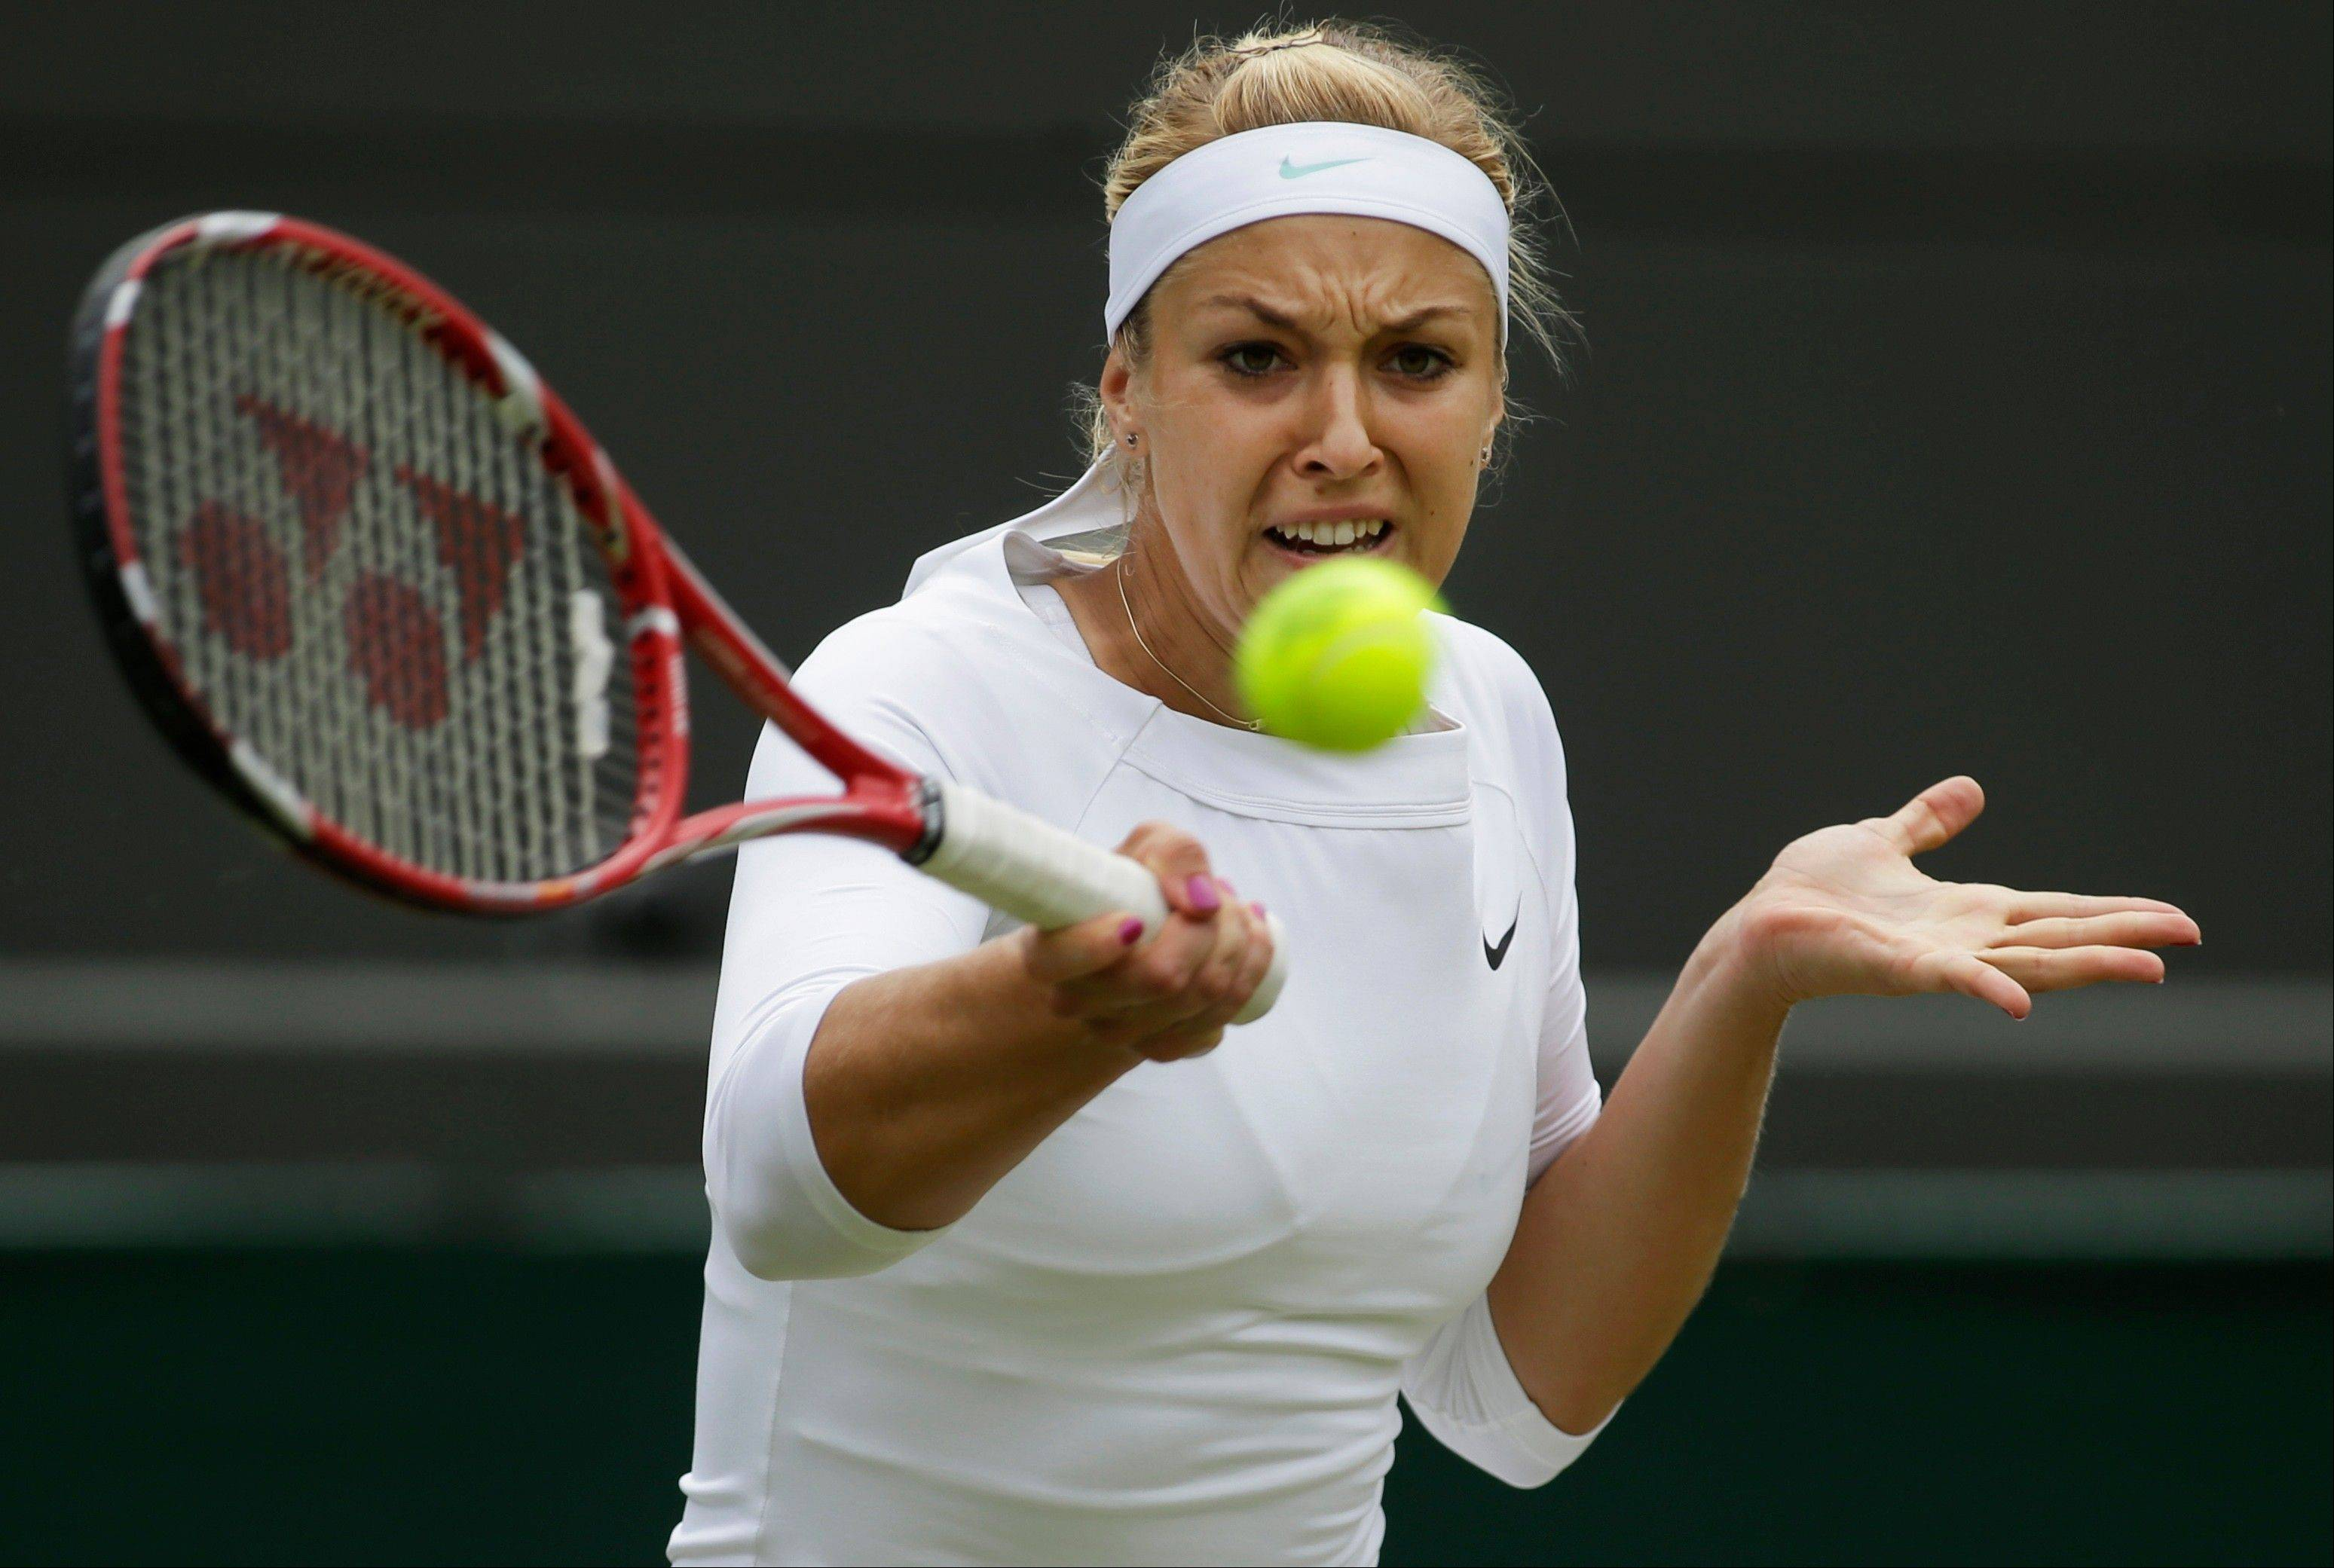 Maria Sharapova of Russia plays a return to Sabine Lisicki of Germany during a fourth round women's singles match Monday at the All England Lawn Tennis Championships at Wimbledon, England. Sharapova lost the match.